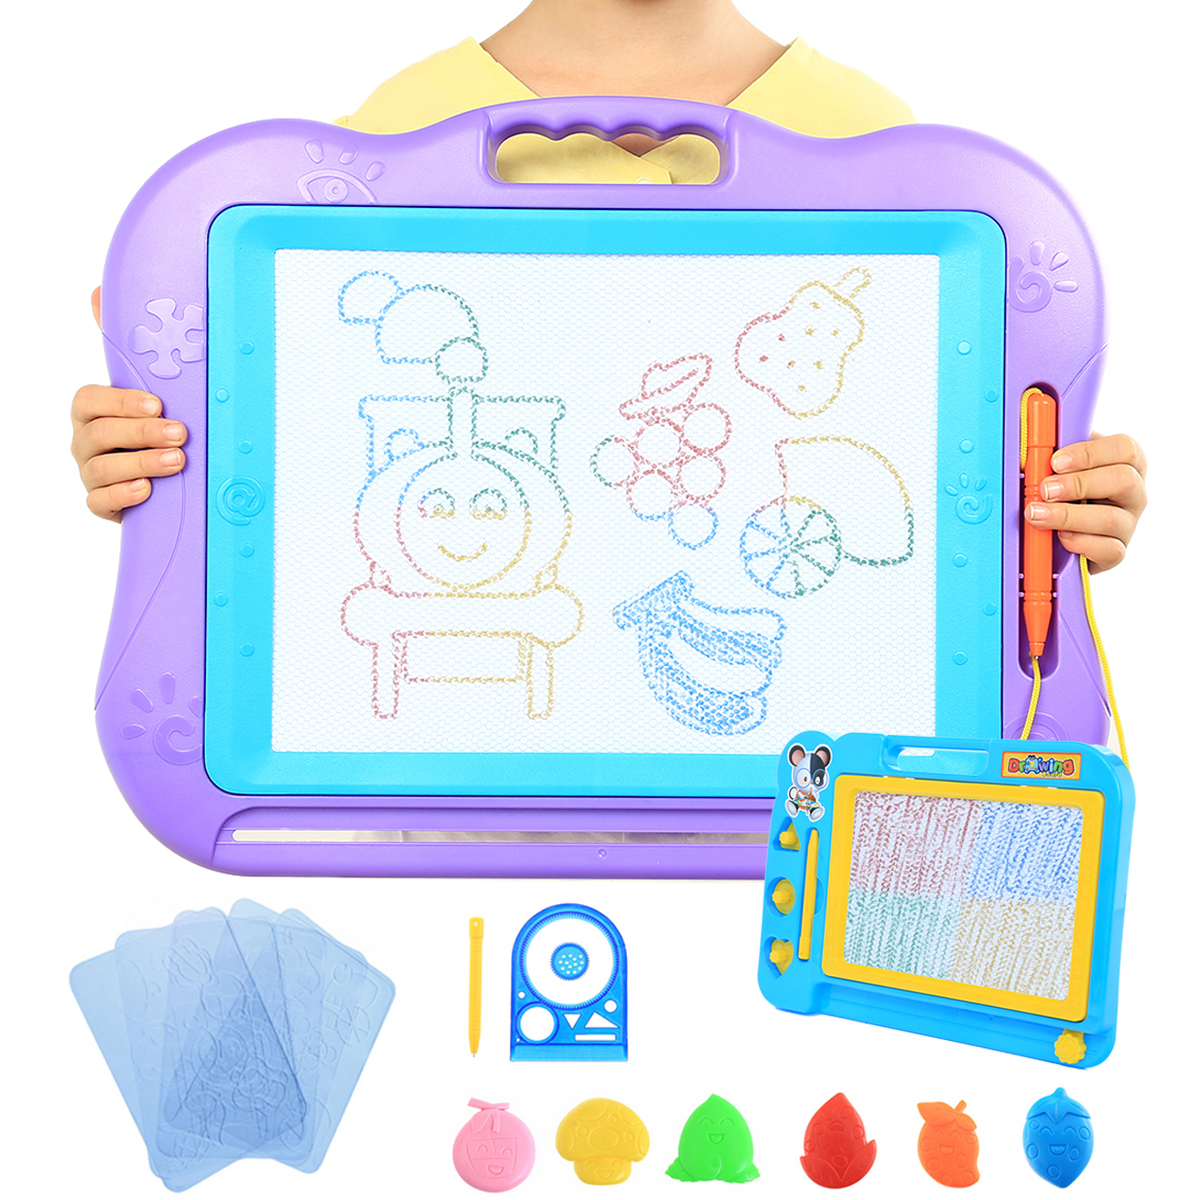 2 Sets Magnetic Drawing Board For Kids 13 X 17 A4 Size